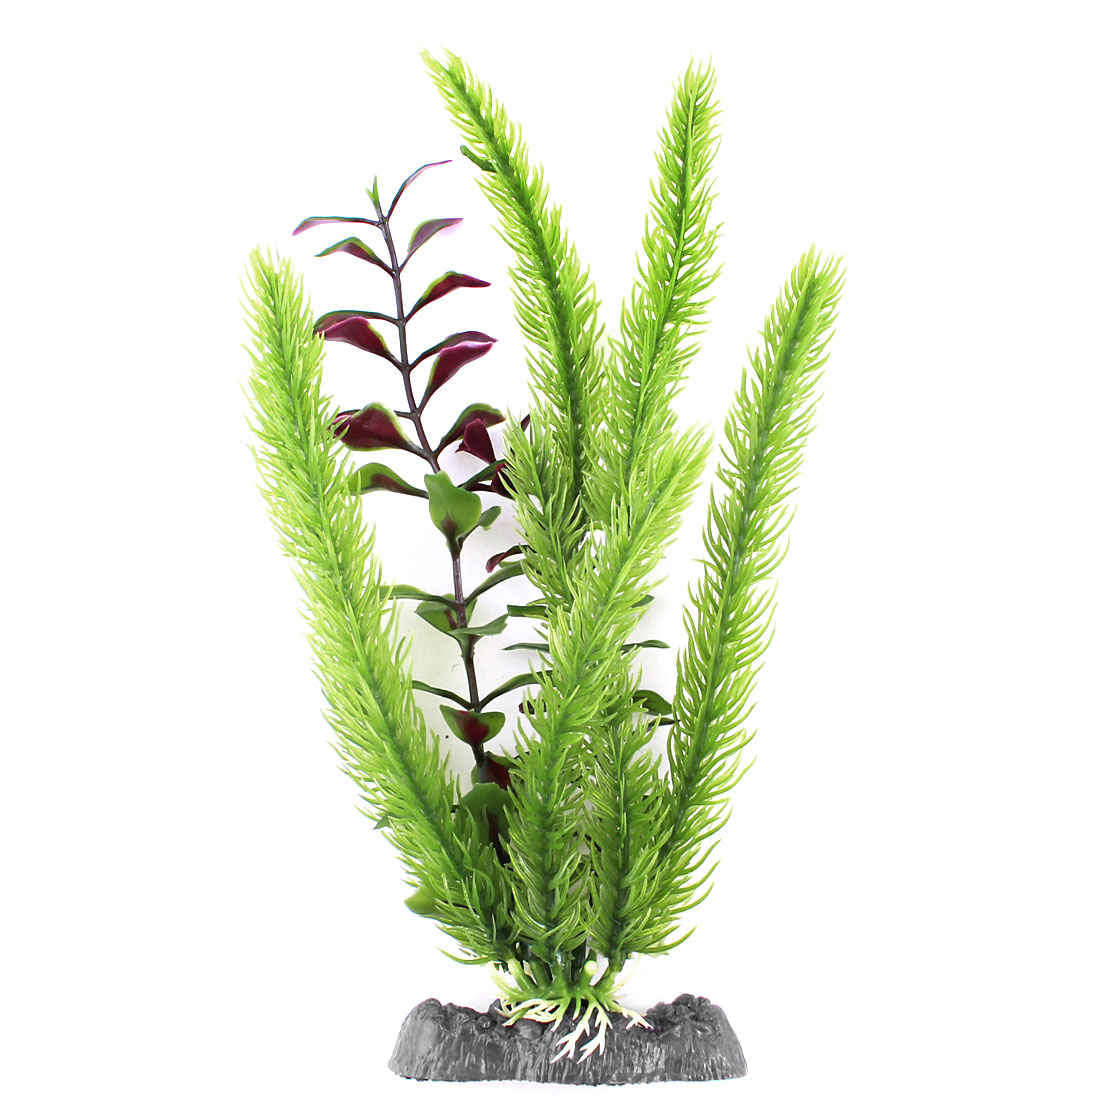 "Aquarium Fish Tank Decor 9.8"" High Green Plastic Artificial Pine Burgundy Water Grass"